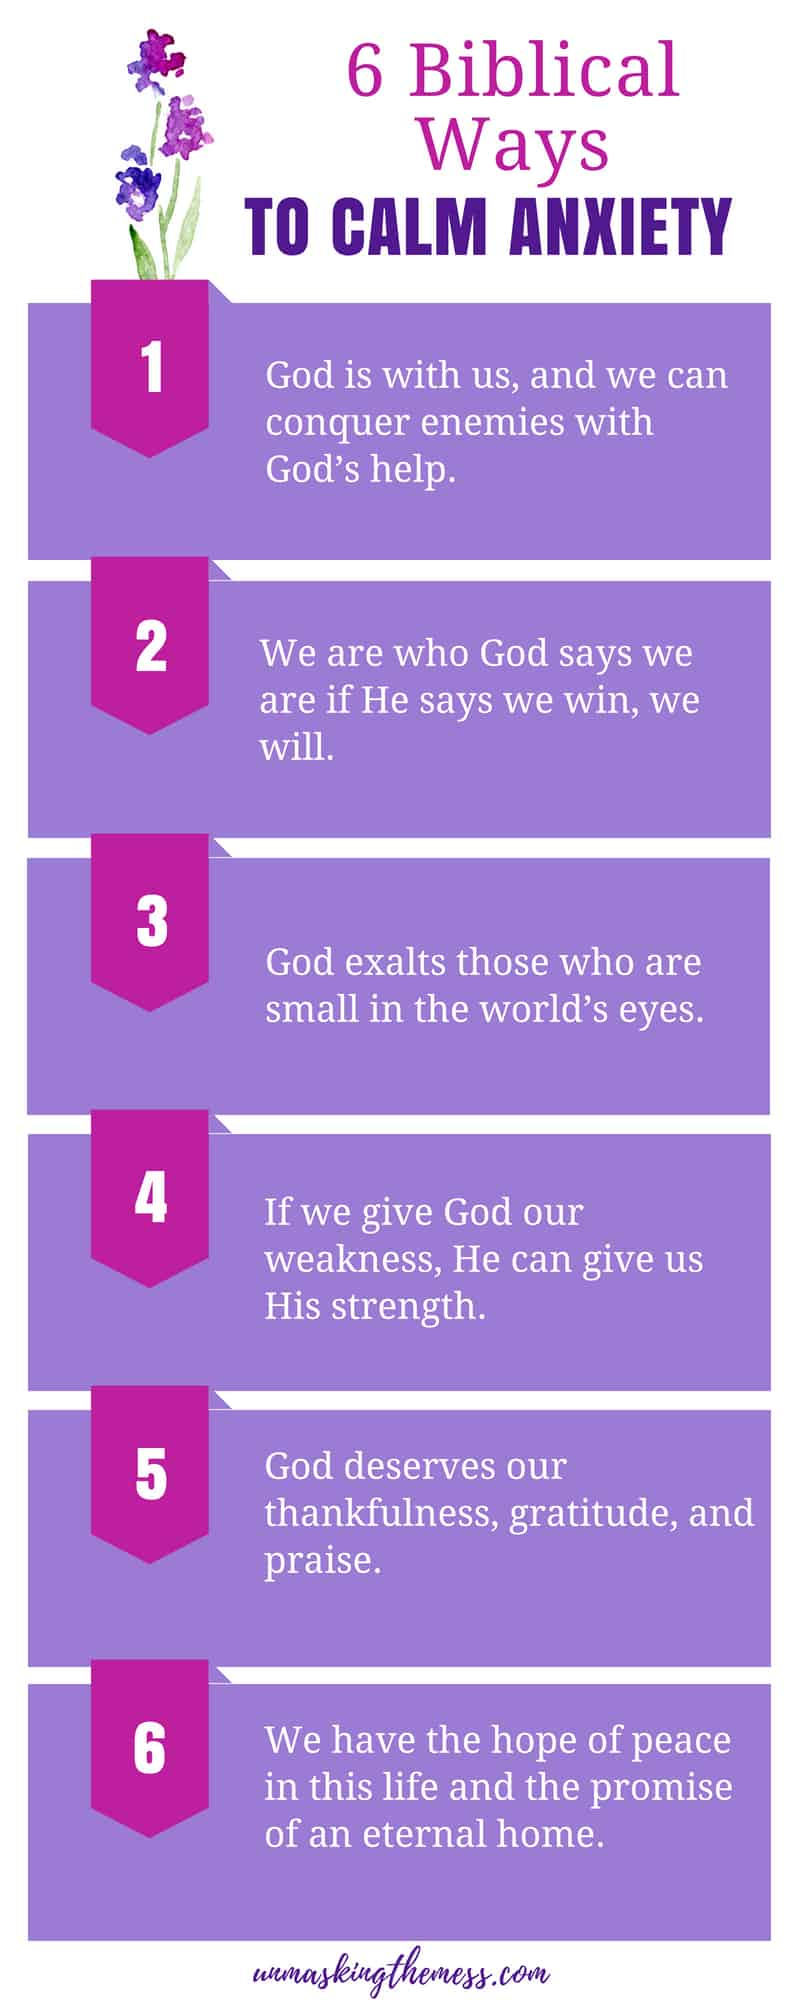 6 Biblical Ways to Calm Anxiety. The Bible and Anxiety- How God Delights in the Underdog. When suffering from anxiety, it's hard to focus on anything else. Do you feel bound by our anxiety? Check out these Bible verses about anxiety. #bibleverses #tips #relief #overcoming #faith